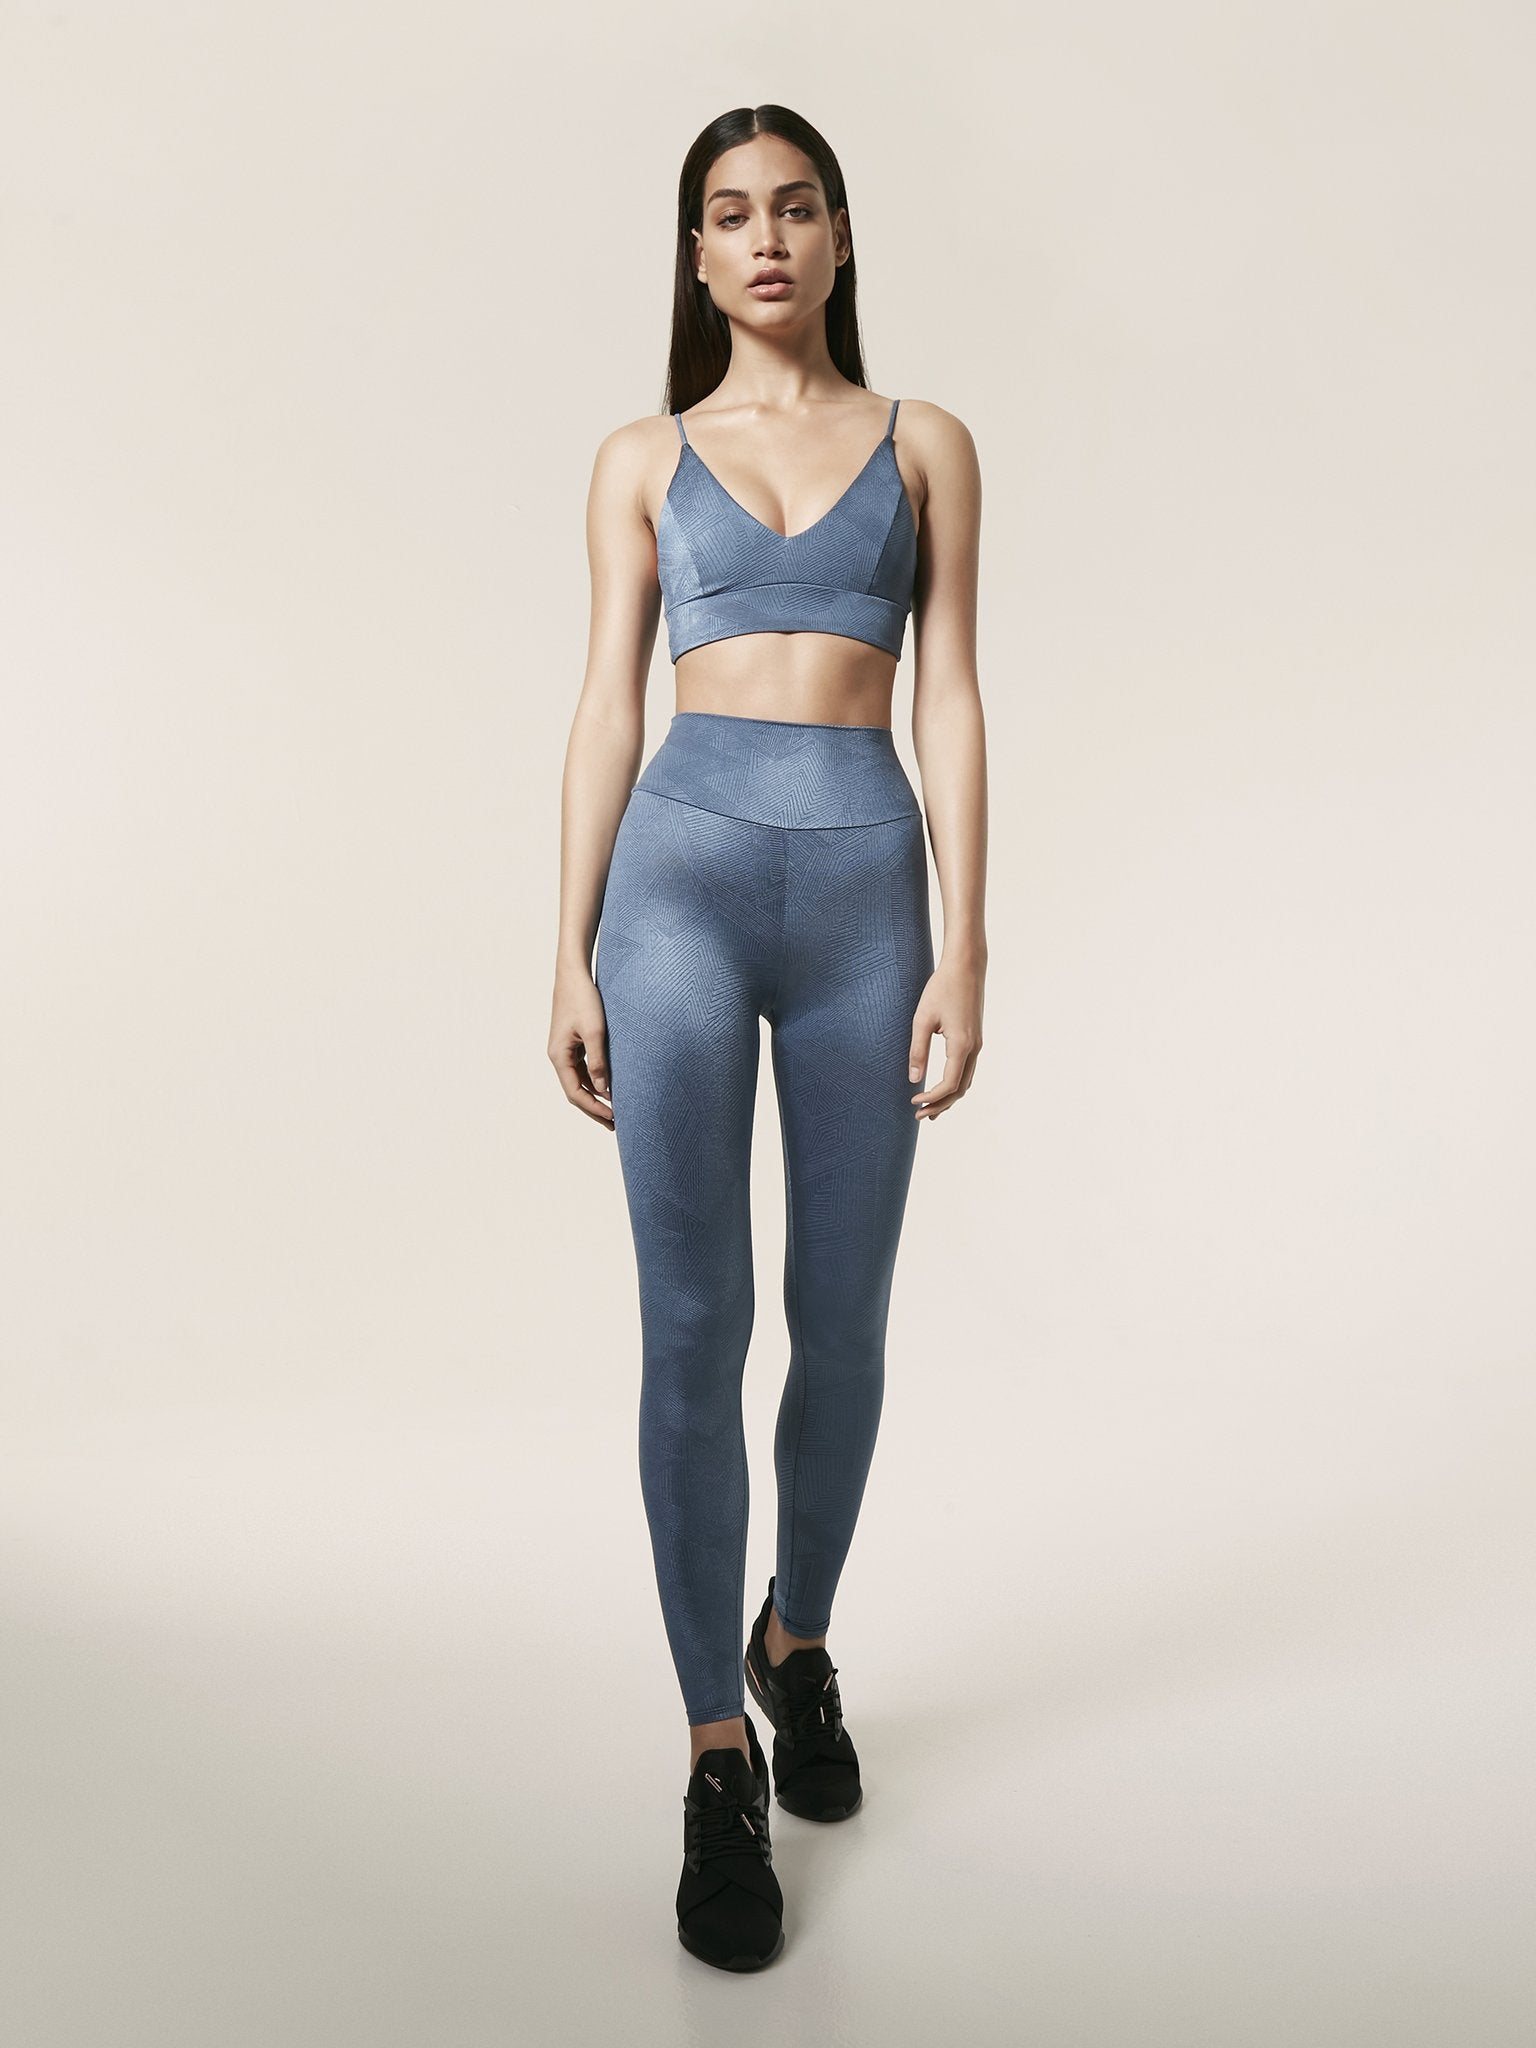 Flex Legging, metal